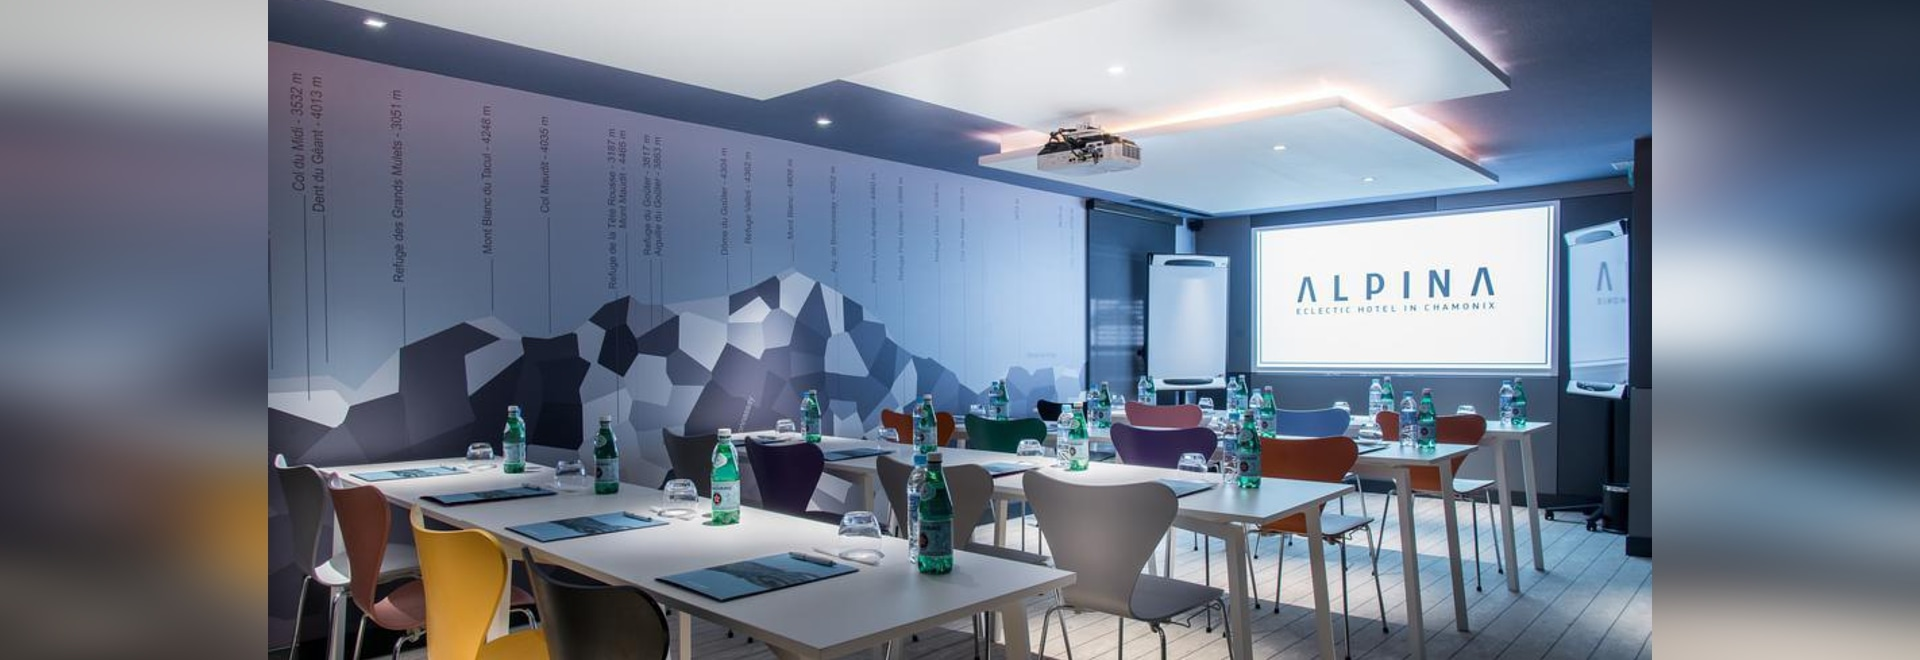 Alpina Eclectic Hotel (Chamonix-Mont-Blanc) with FAST Table.